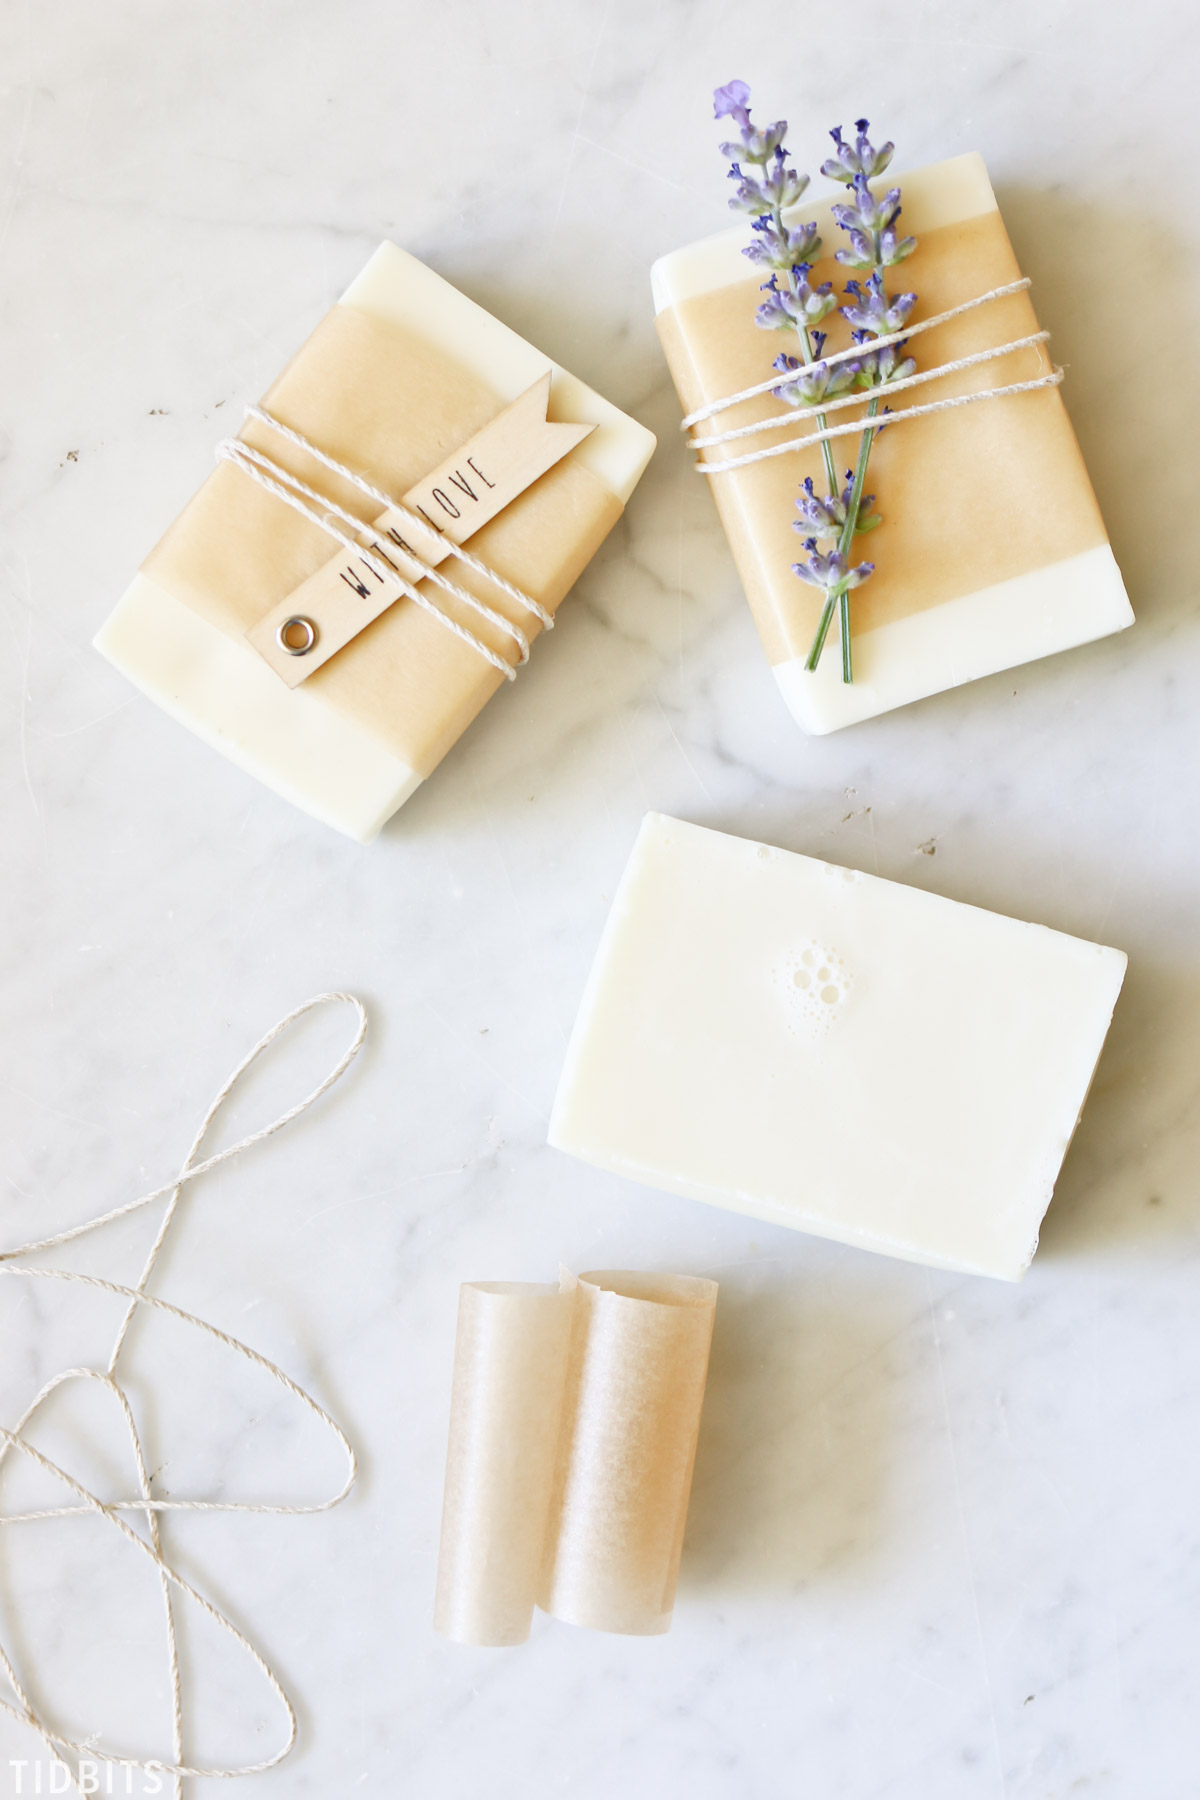 Ideas for packaging handmade soap